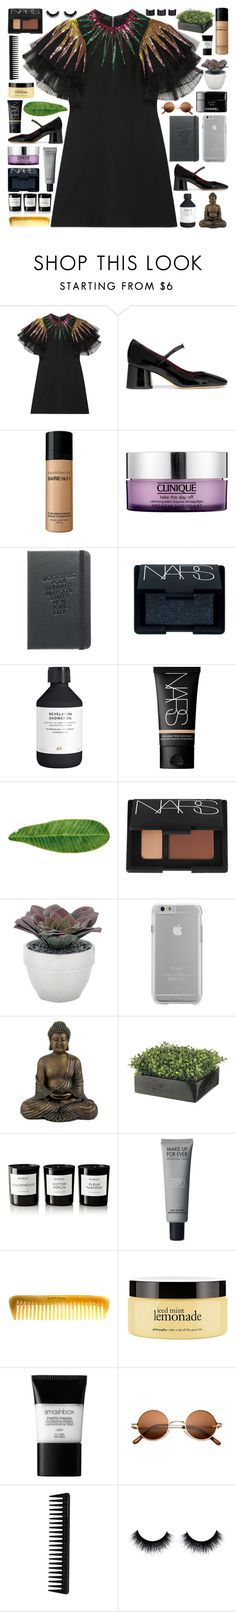 """""""Back To You"""" by pure-and-valuable ❤ liked on Polyvore featuring Gucci, Marc Jacobs, Bare Escentuals, Clinique, NARS Cosmetics, H&M, Abyss & Habidecor, Torre & Tagus, Case-Mate and Byredo"""